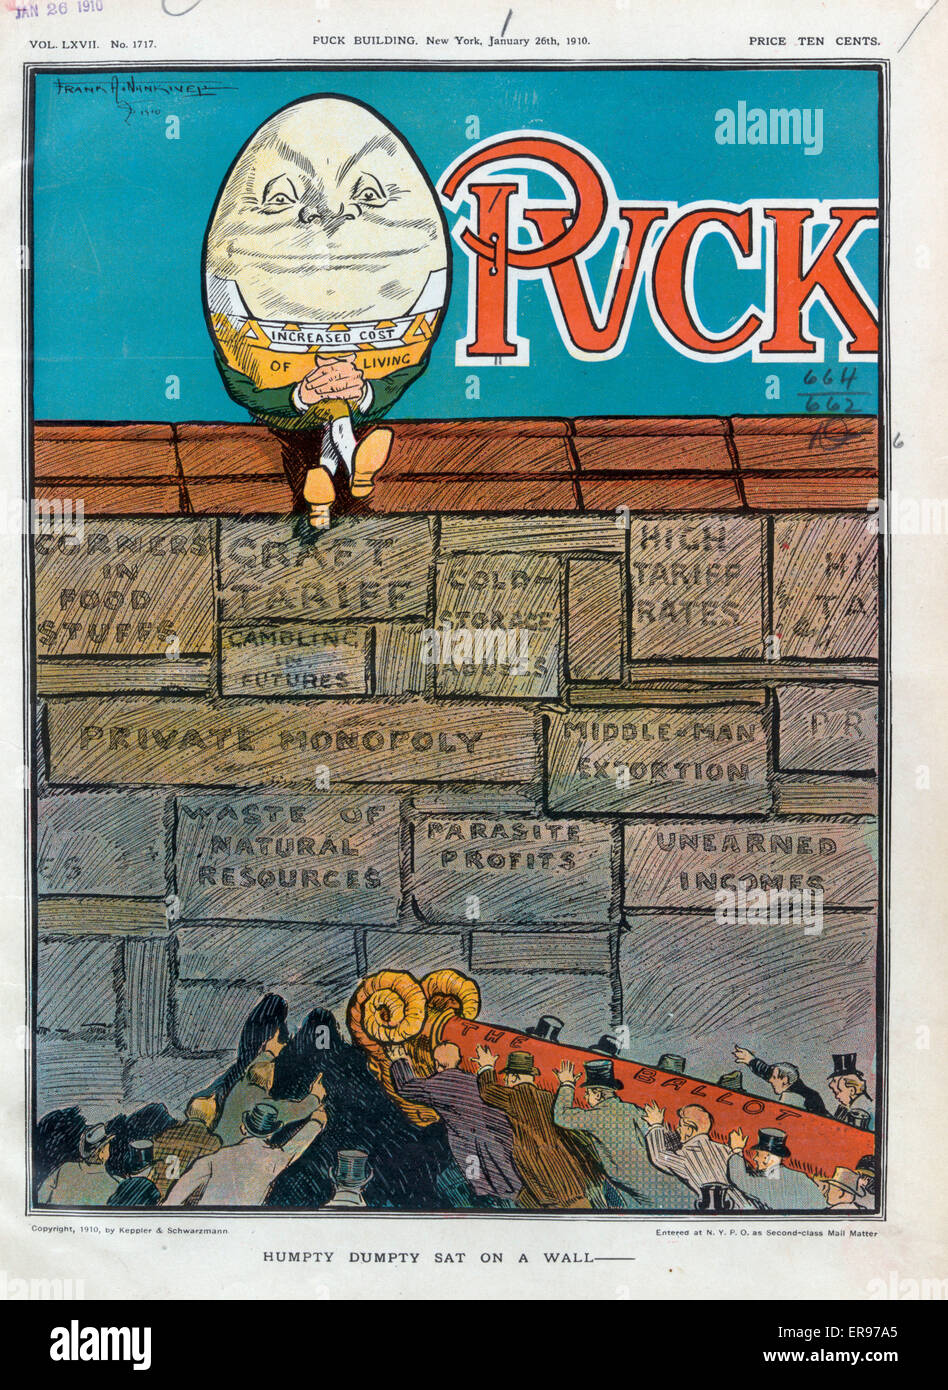 Humpty Dumpty sat on a wall -. Illustration shows a smug-looking Humpty Dumpty labeled Increased Cost of Living Stock Photo